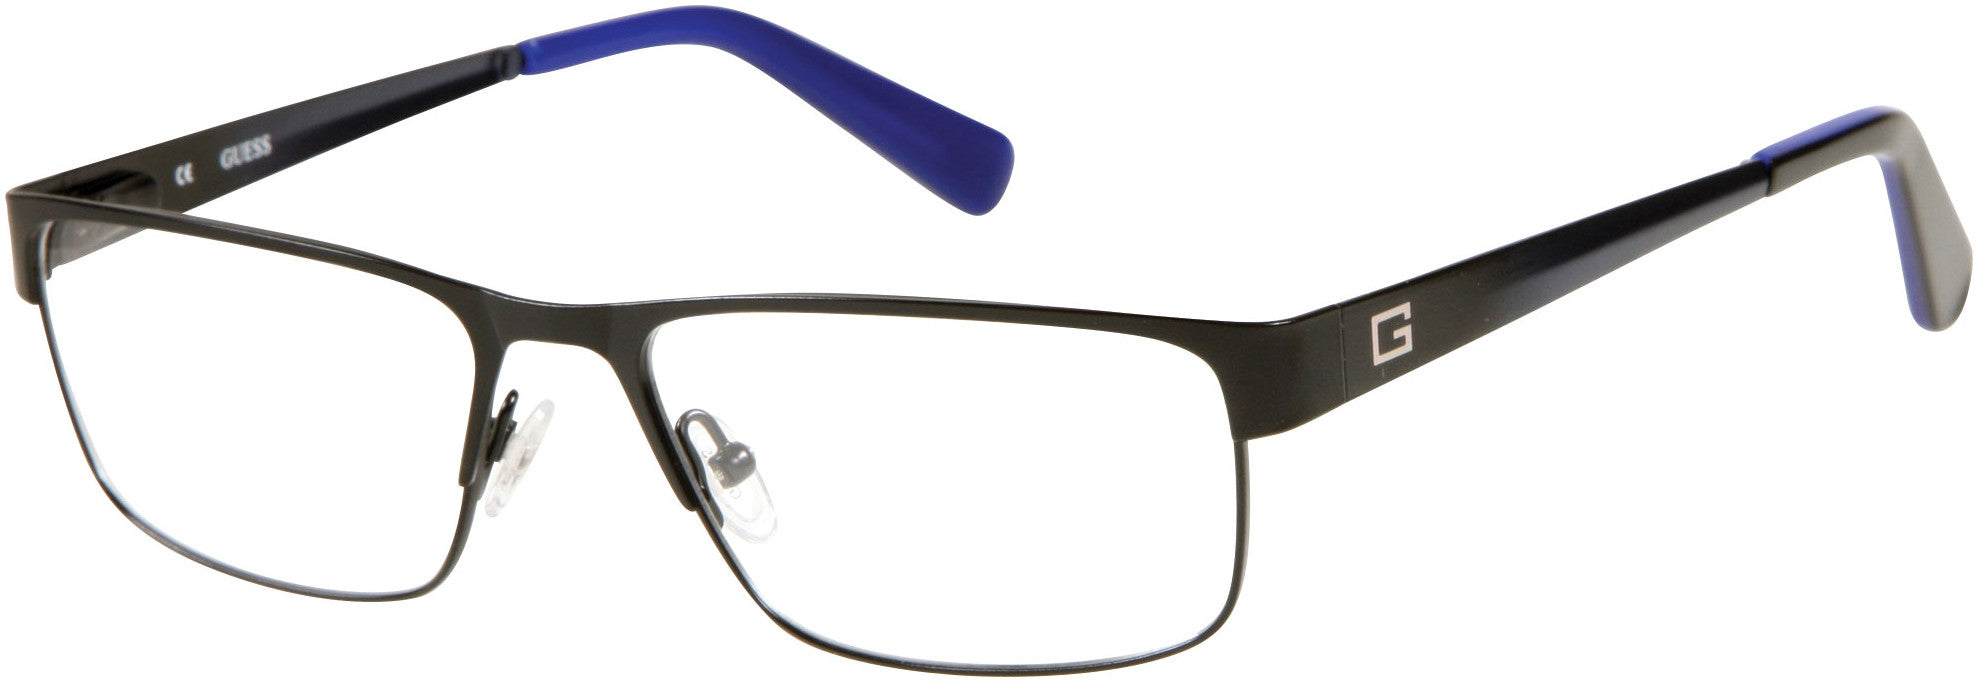 Guess GU1770 Eyeglasses B84-B84 - Black